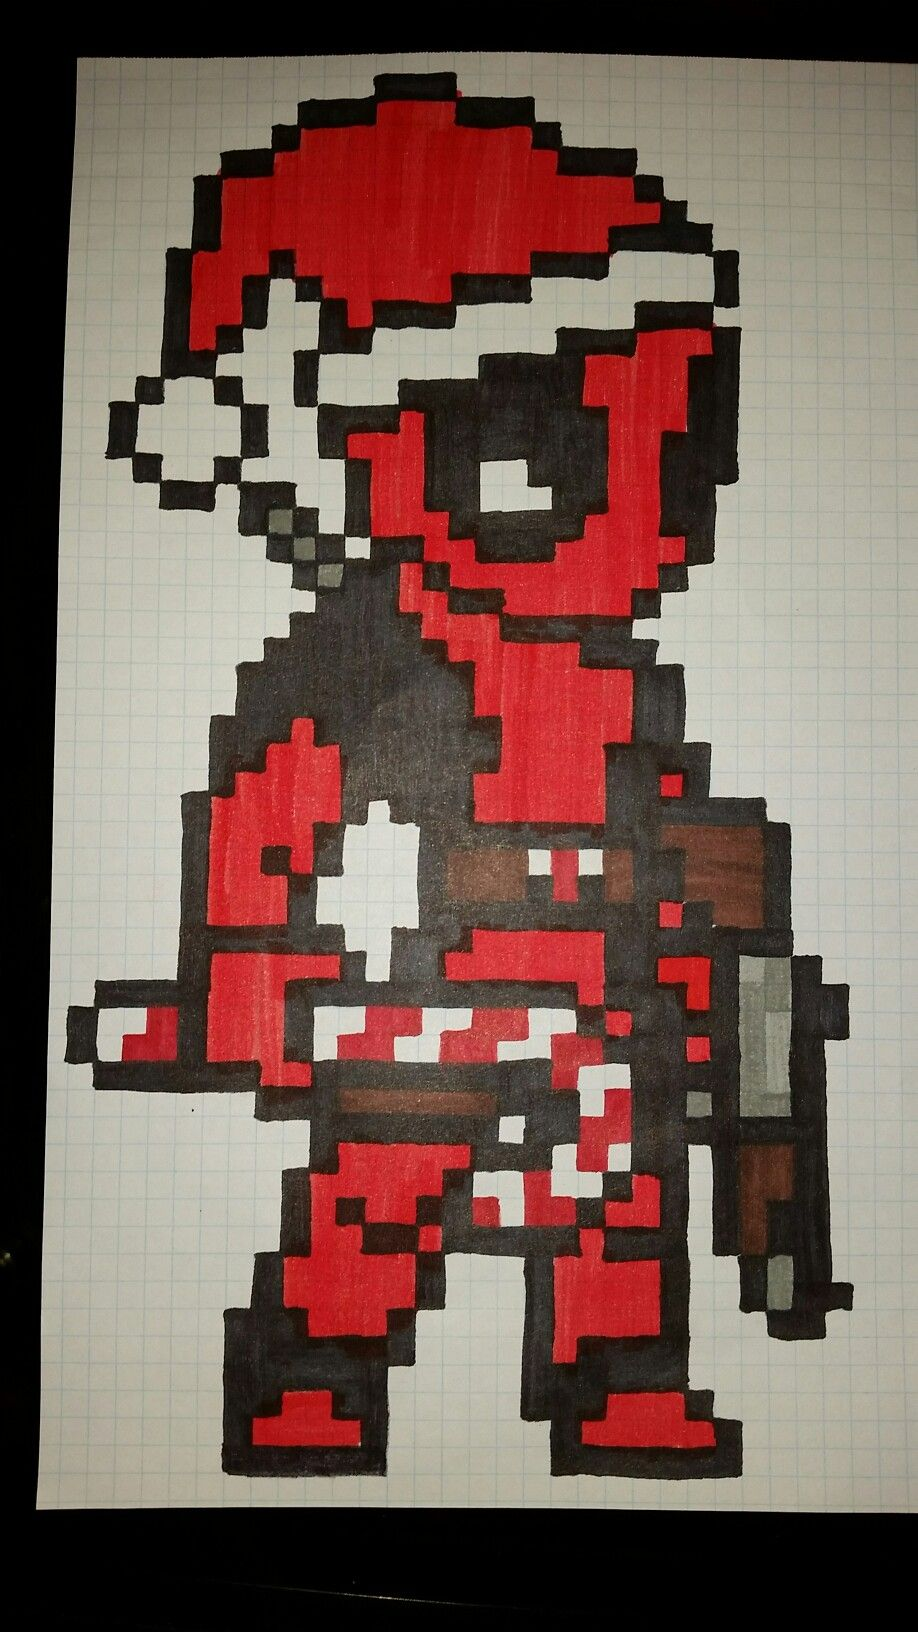 Deadpool navideño pixel art | pixel art | Dibujos tumblr ...